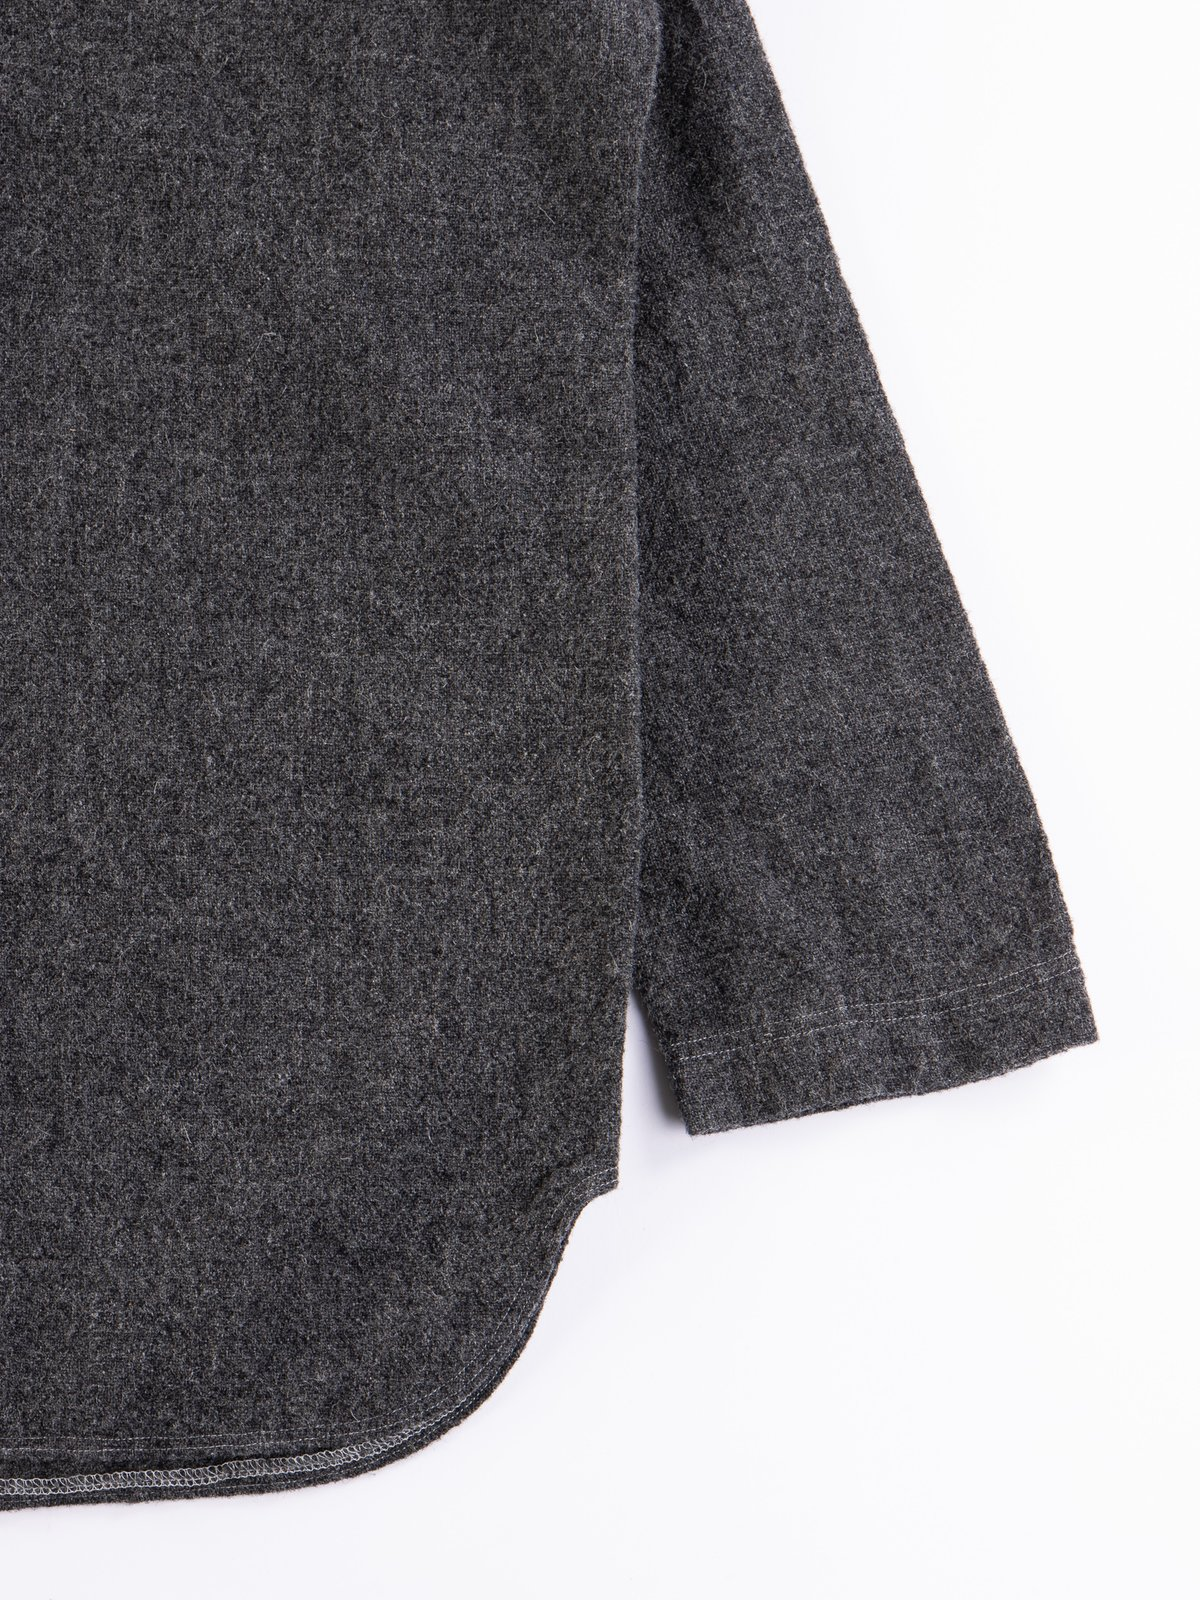 Charcoal Weavers Stock Pullover Tail Shirt - Image 4